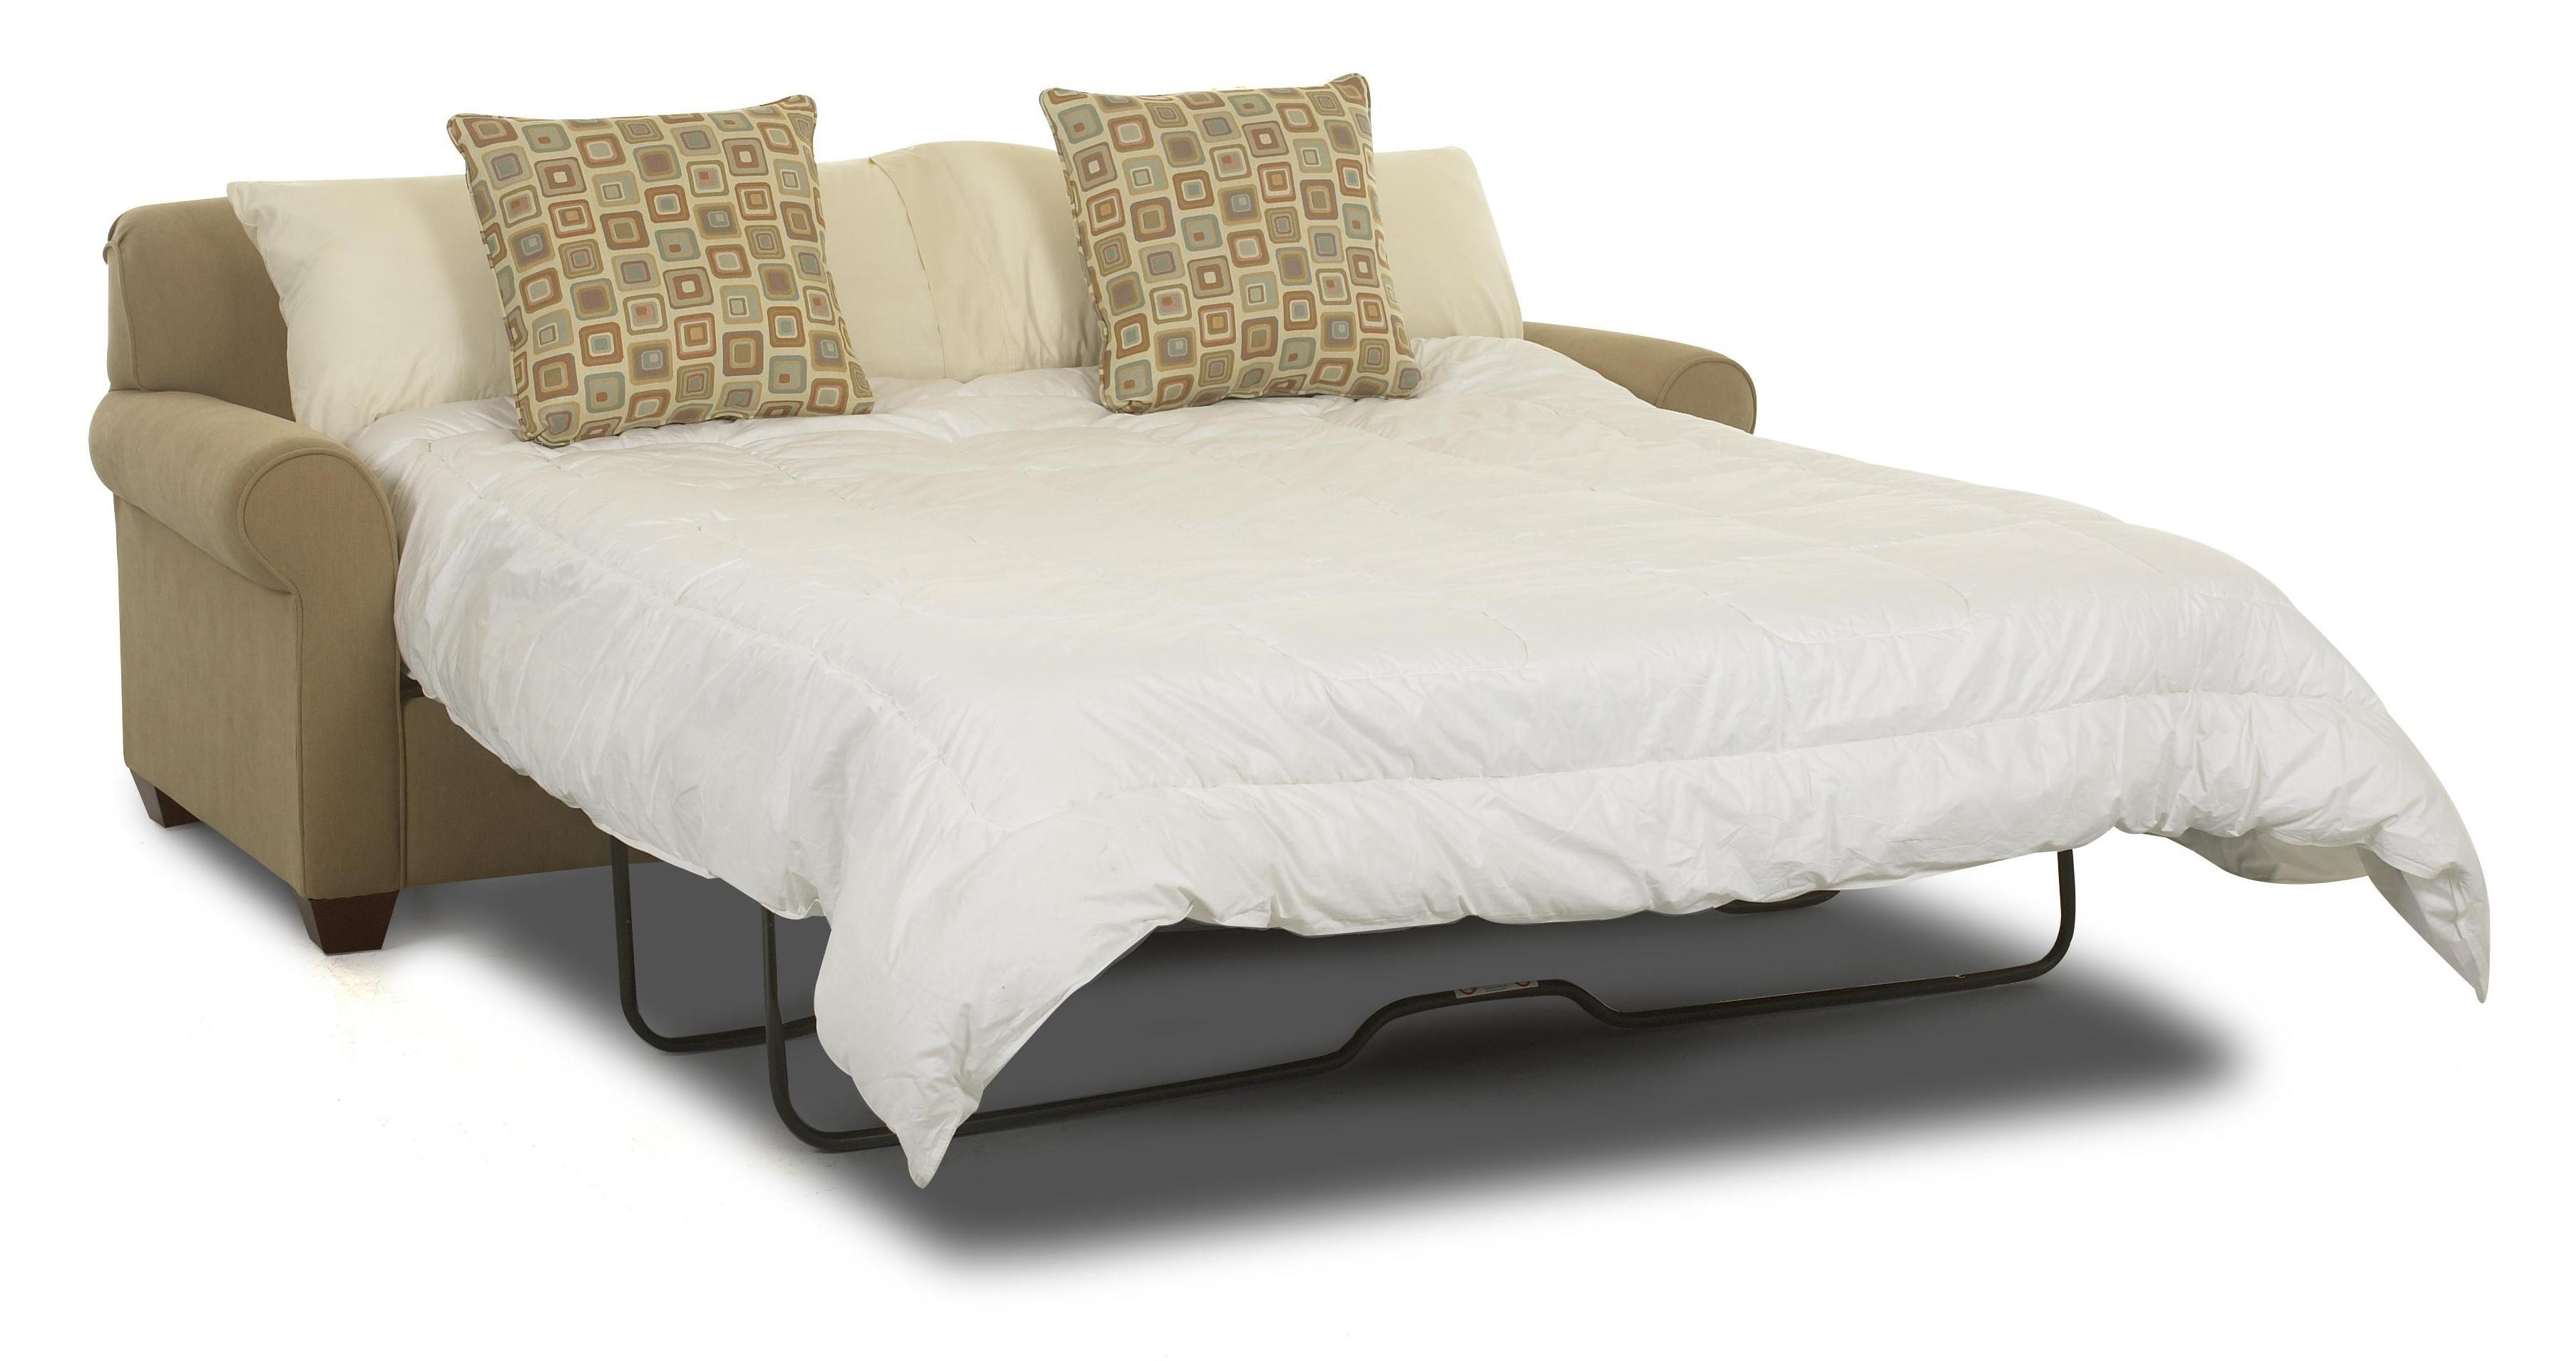 Sofas Center : Sleeper Sofa Sheets Queen Size Sheet Set Sheetssofa With Regard To Sofa Sleepers Queen Size (View 5 of 20)